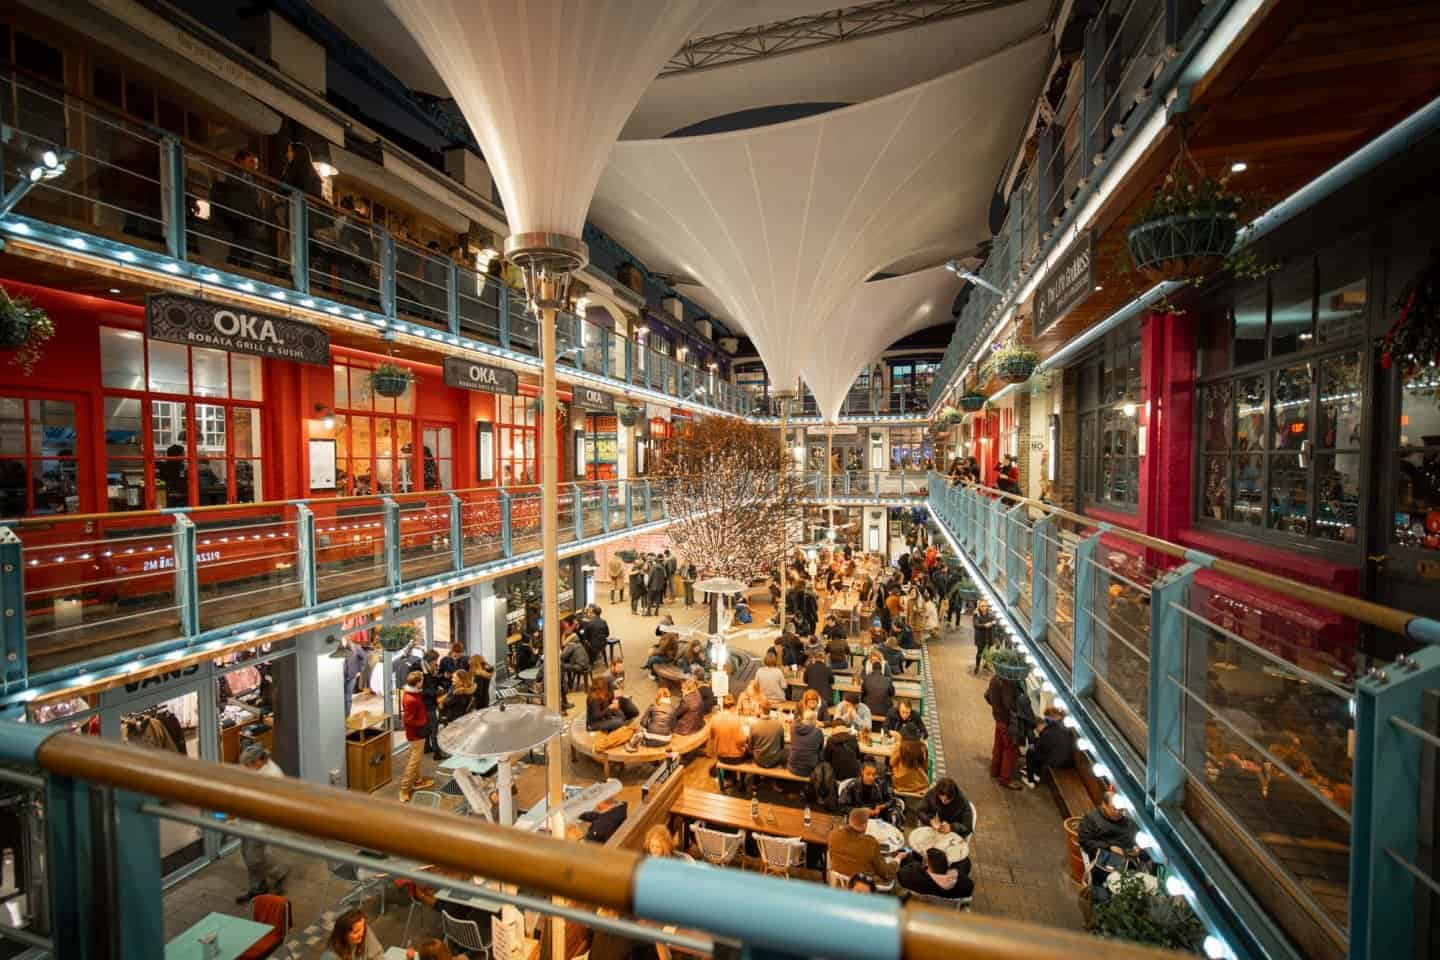 One of London's hidden gems; Kingly Court on Carnaby Street.